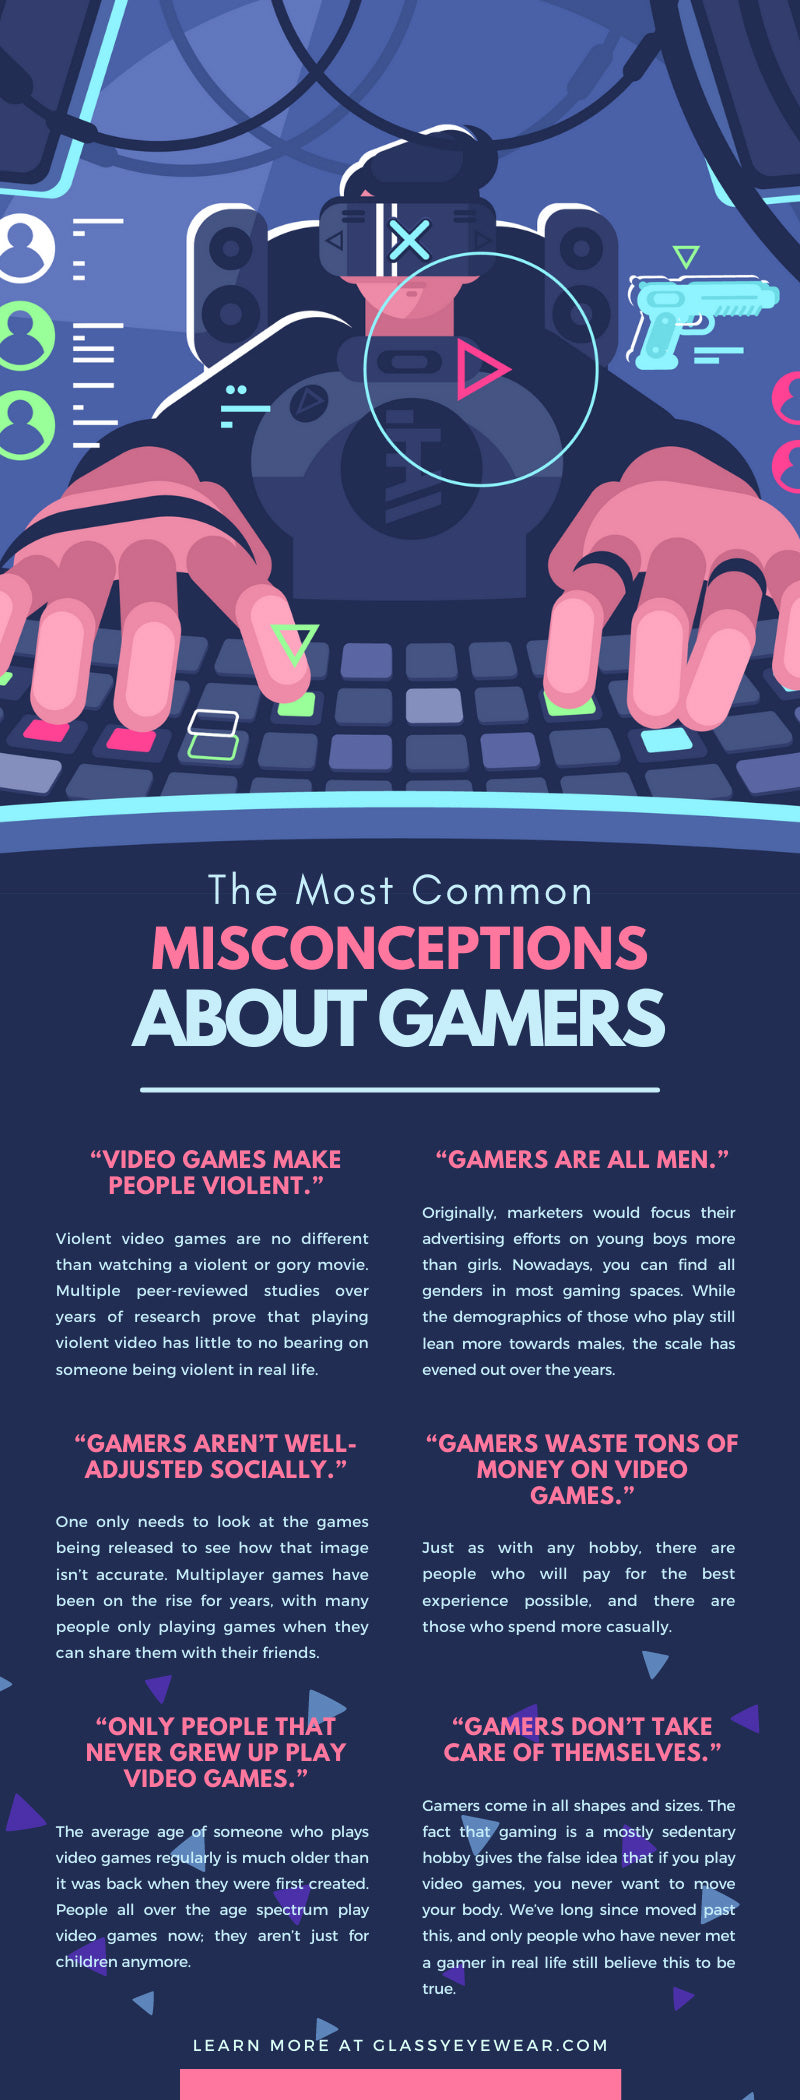 The Most Common Misconceptions About Gamers